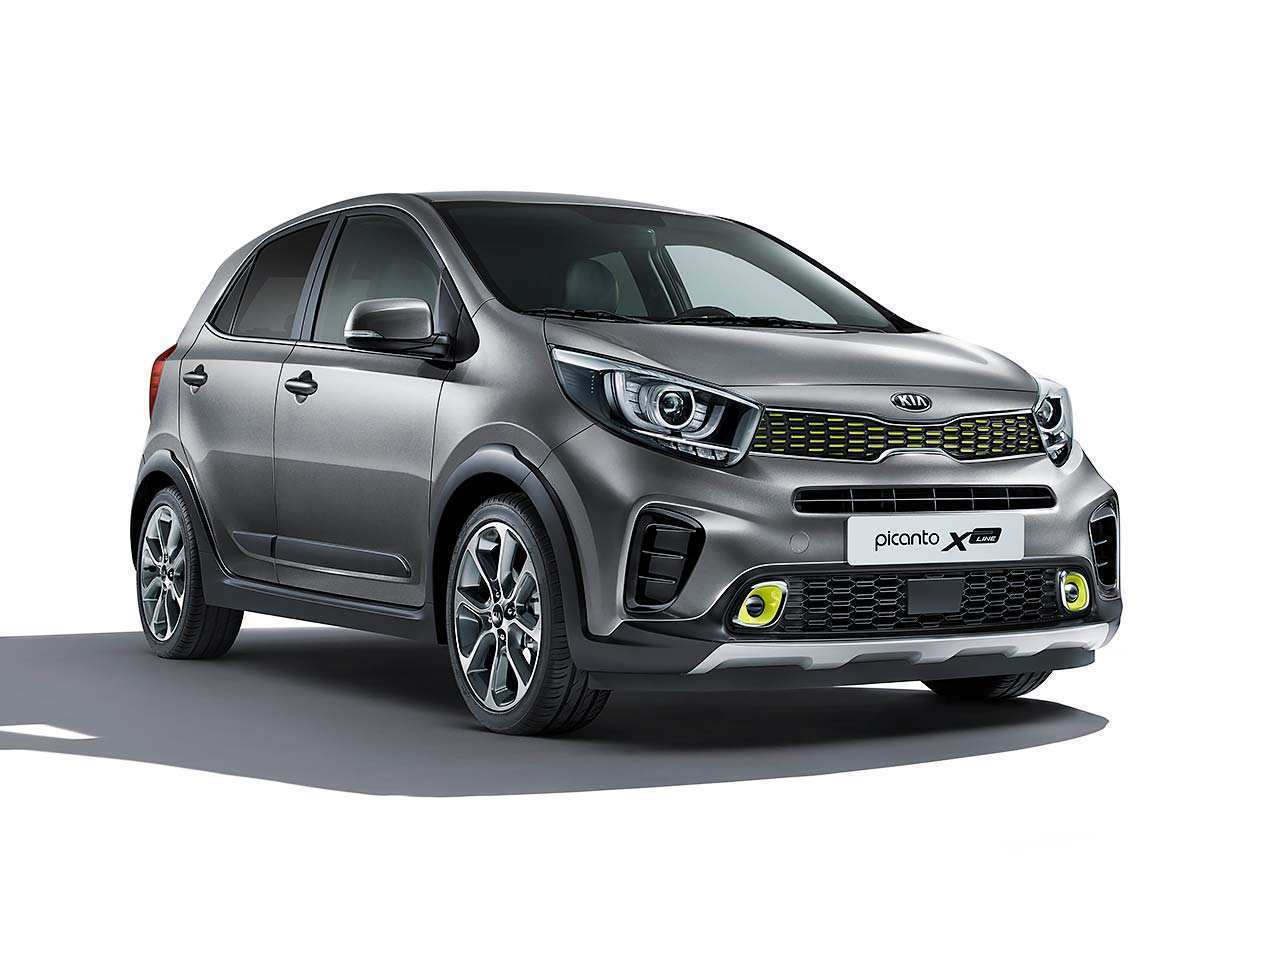 42 New Kia Picanto 2019 Xline Price And Review